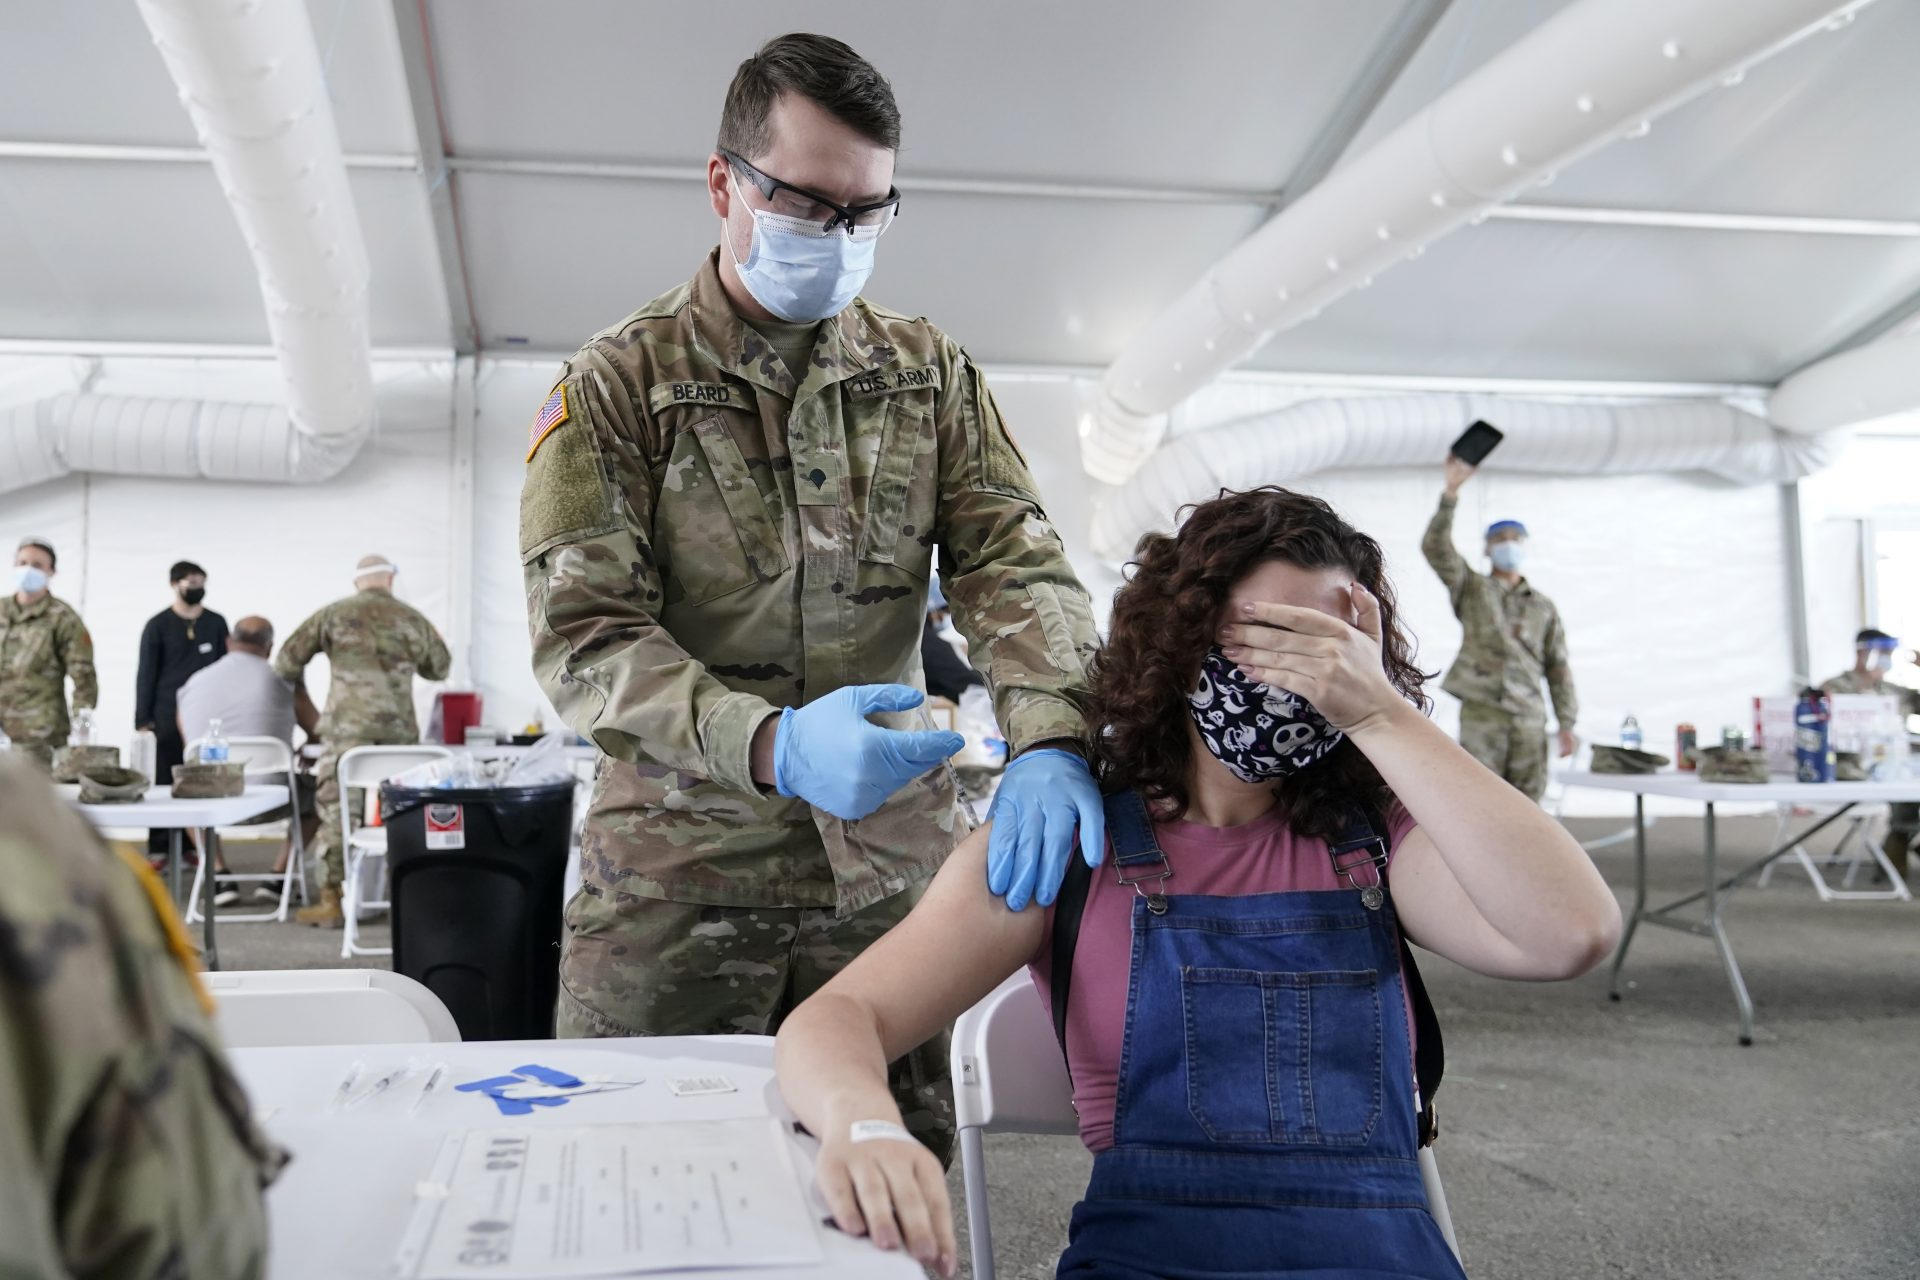 In this April 5, 2021, file photo, Leanne Montenegro, 21, covers her eyes as she doesn't like the sight of needles, while she receives the Pfizer COVID-19 vaccine at a FEMA vaccination center at Miami Dade College in Miami. Nearly half of new coronavirus infections nationwide are in just five states, including Florida — a situation that puts pressure on the federal government to consider changing how it distributes vaccines by sending more doses to hot spots.